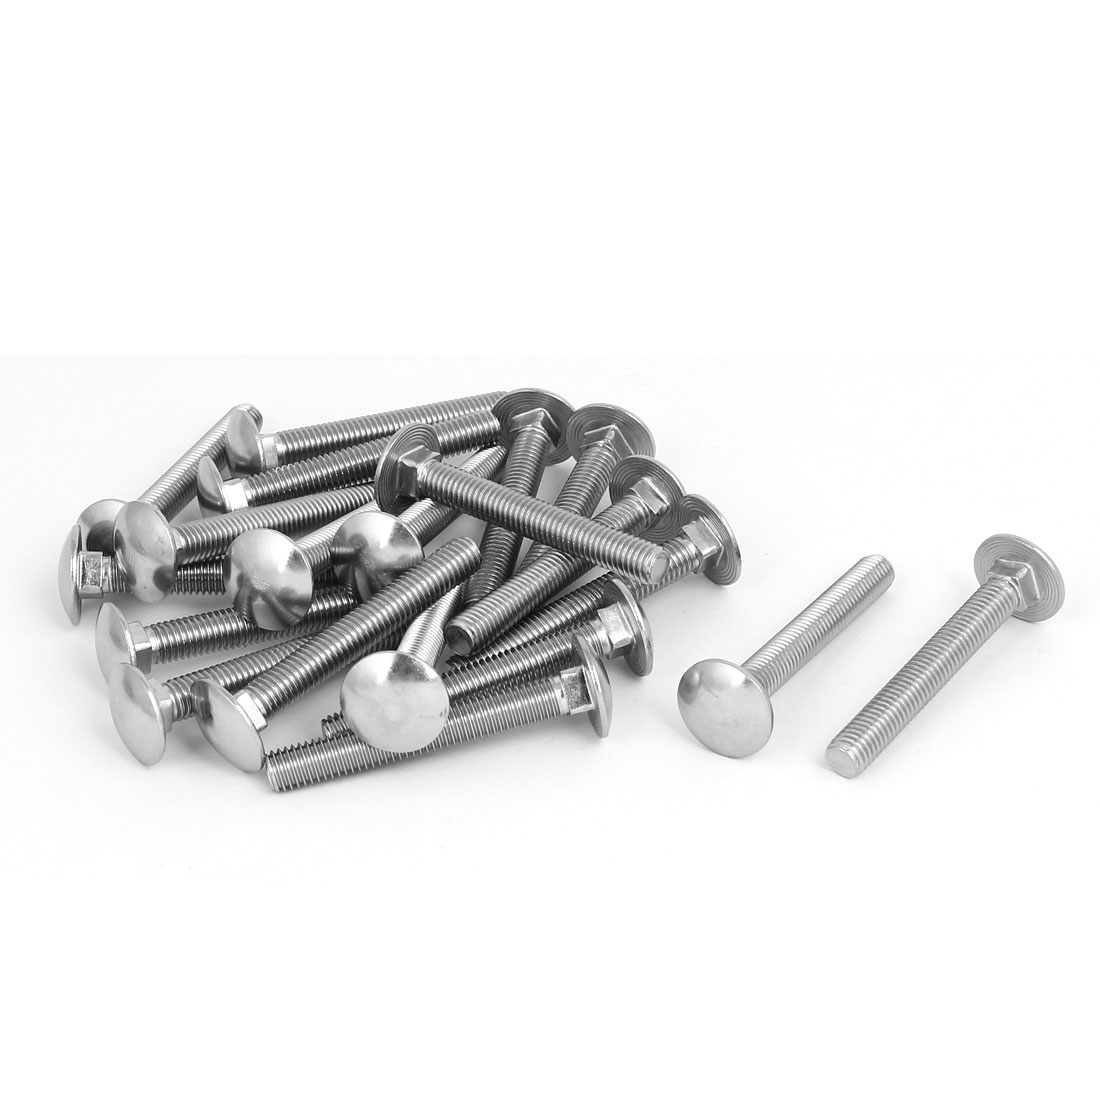 M8x60mm 304 Stainless Steel Round Cap Square Neck Trailer Carriage Bolts 20pcs